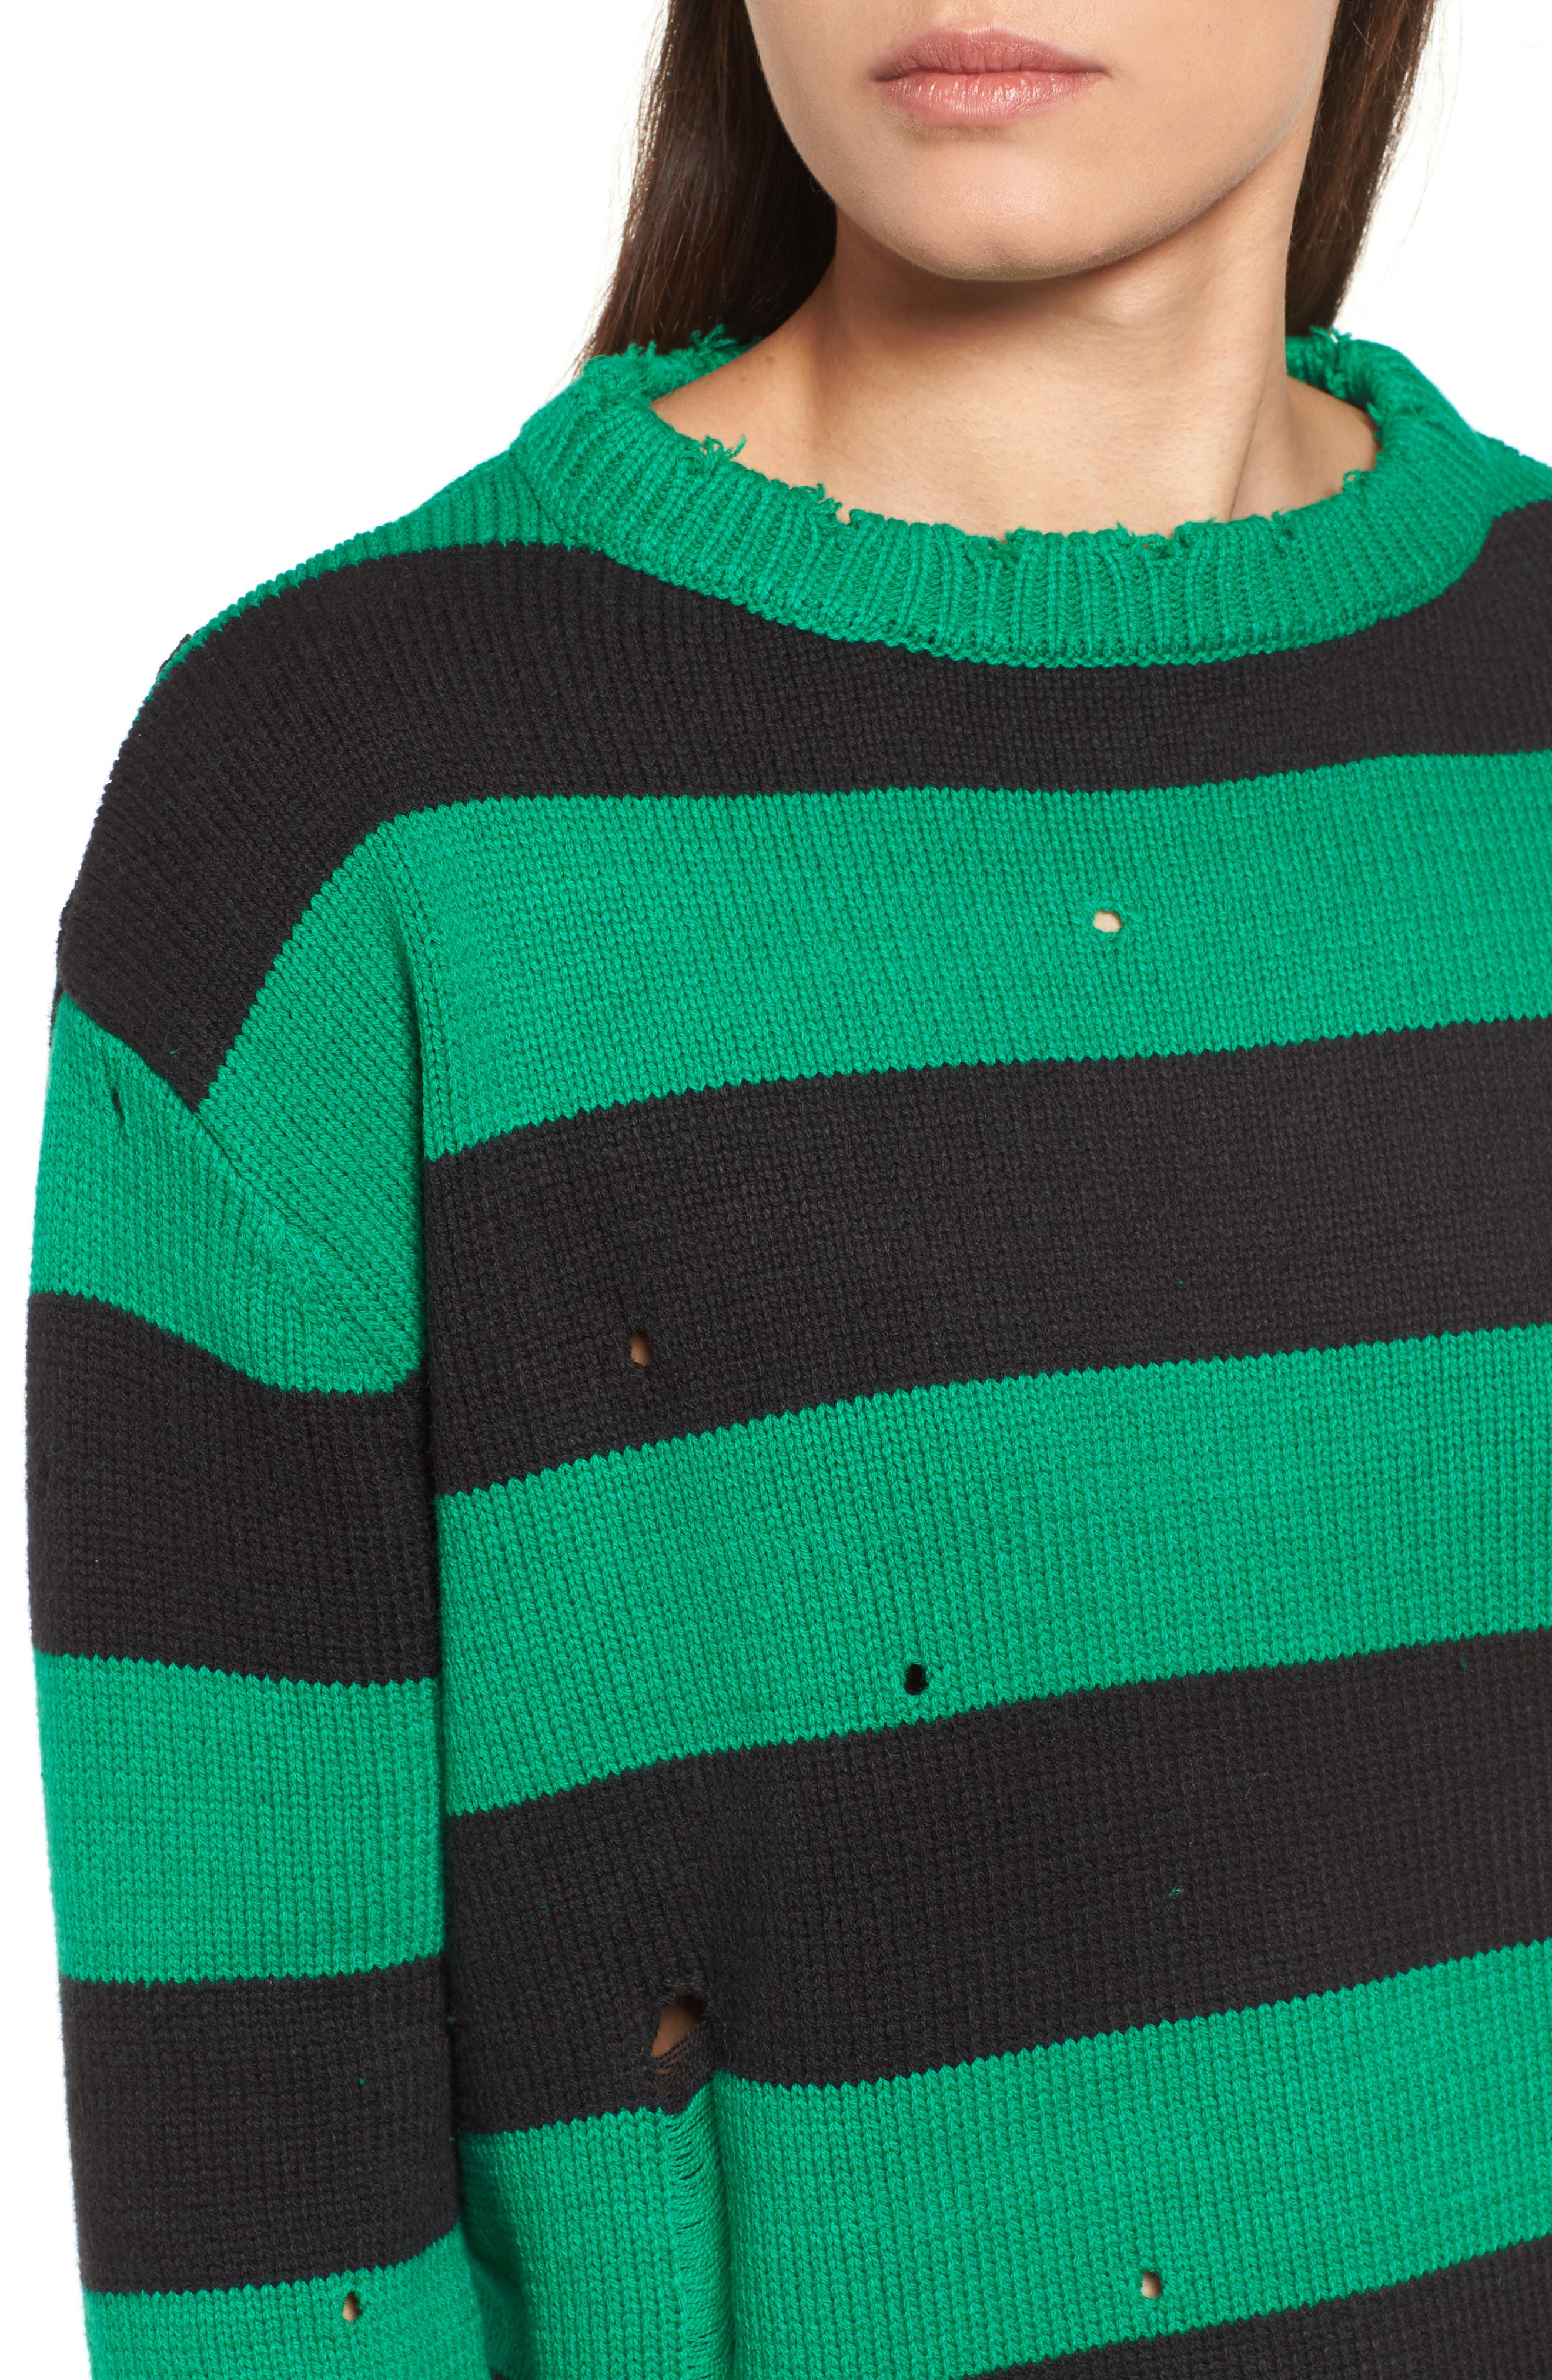 Destroyed Stripe Sweater,                             Alternate thumbnail 4, color,                             300